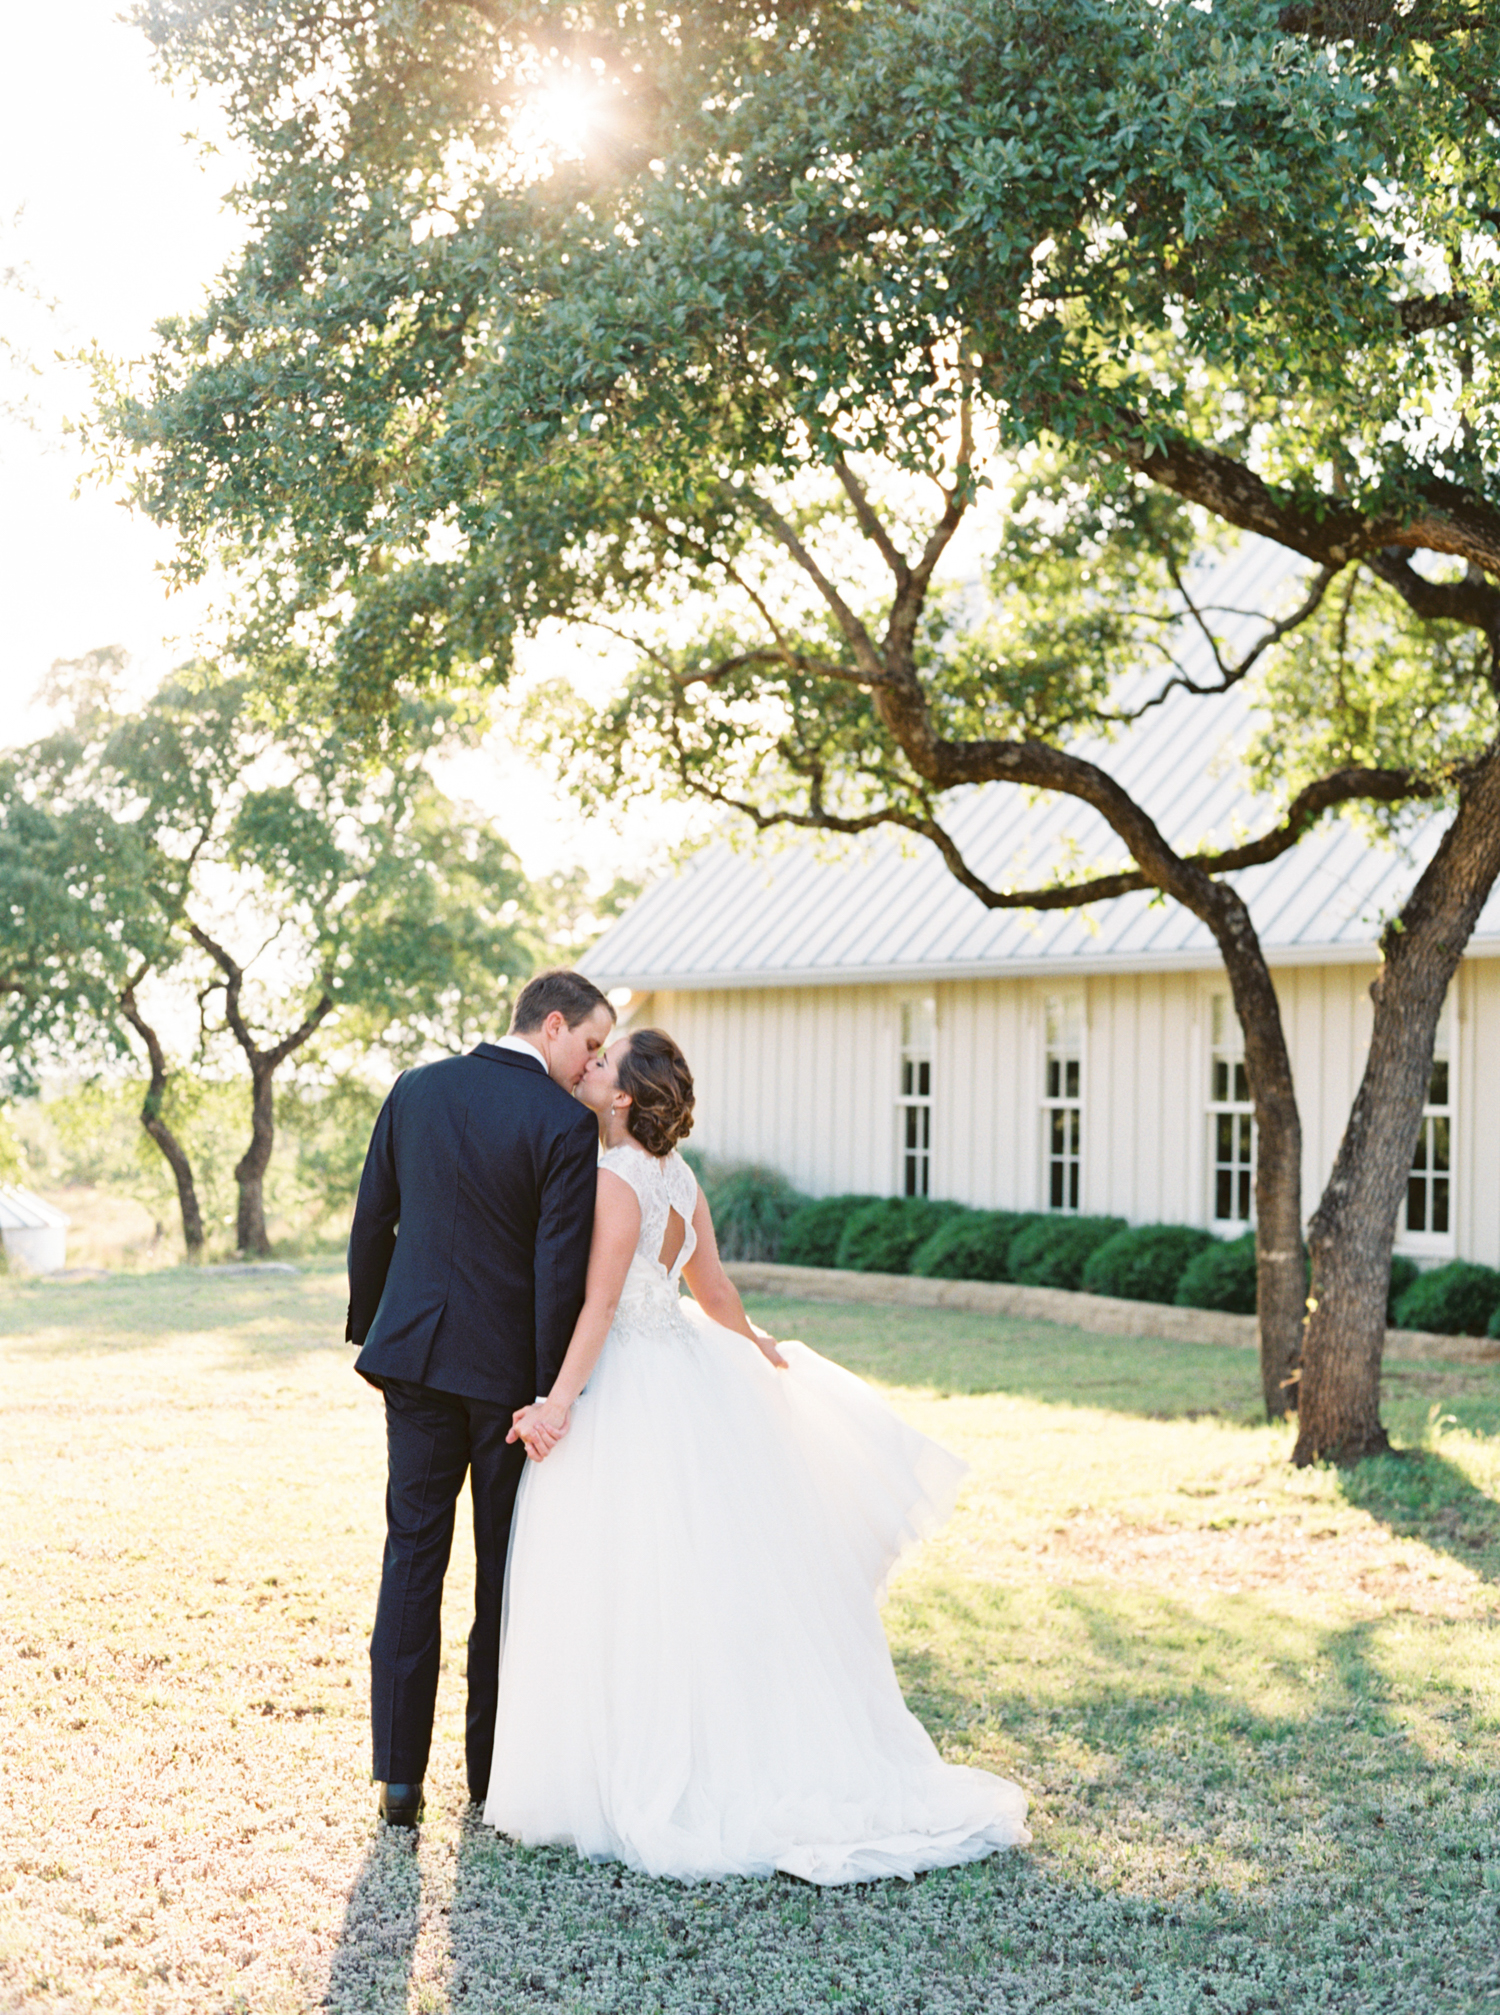 AUSTIN WEDDING PHOTOGRAPHER PHOTO-81.jpg